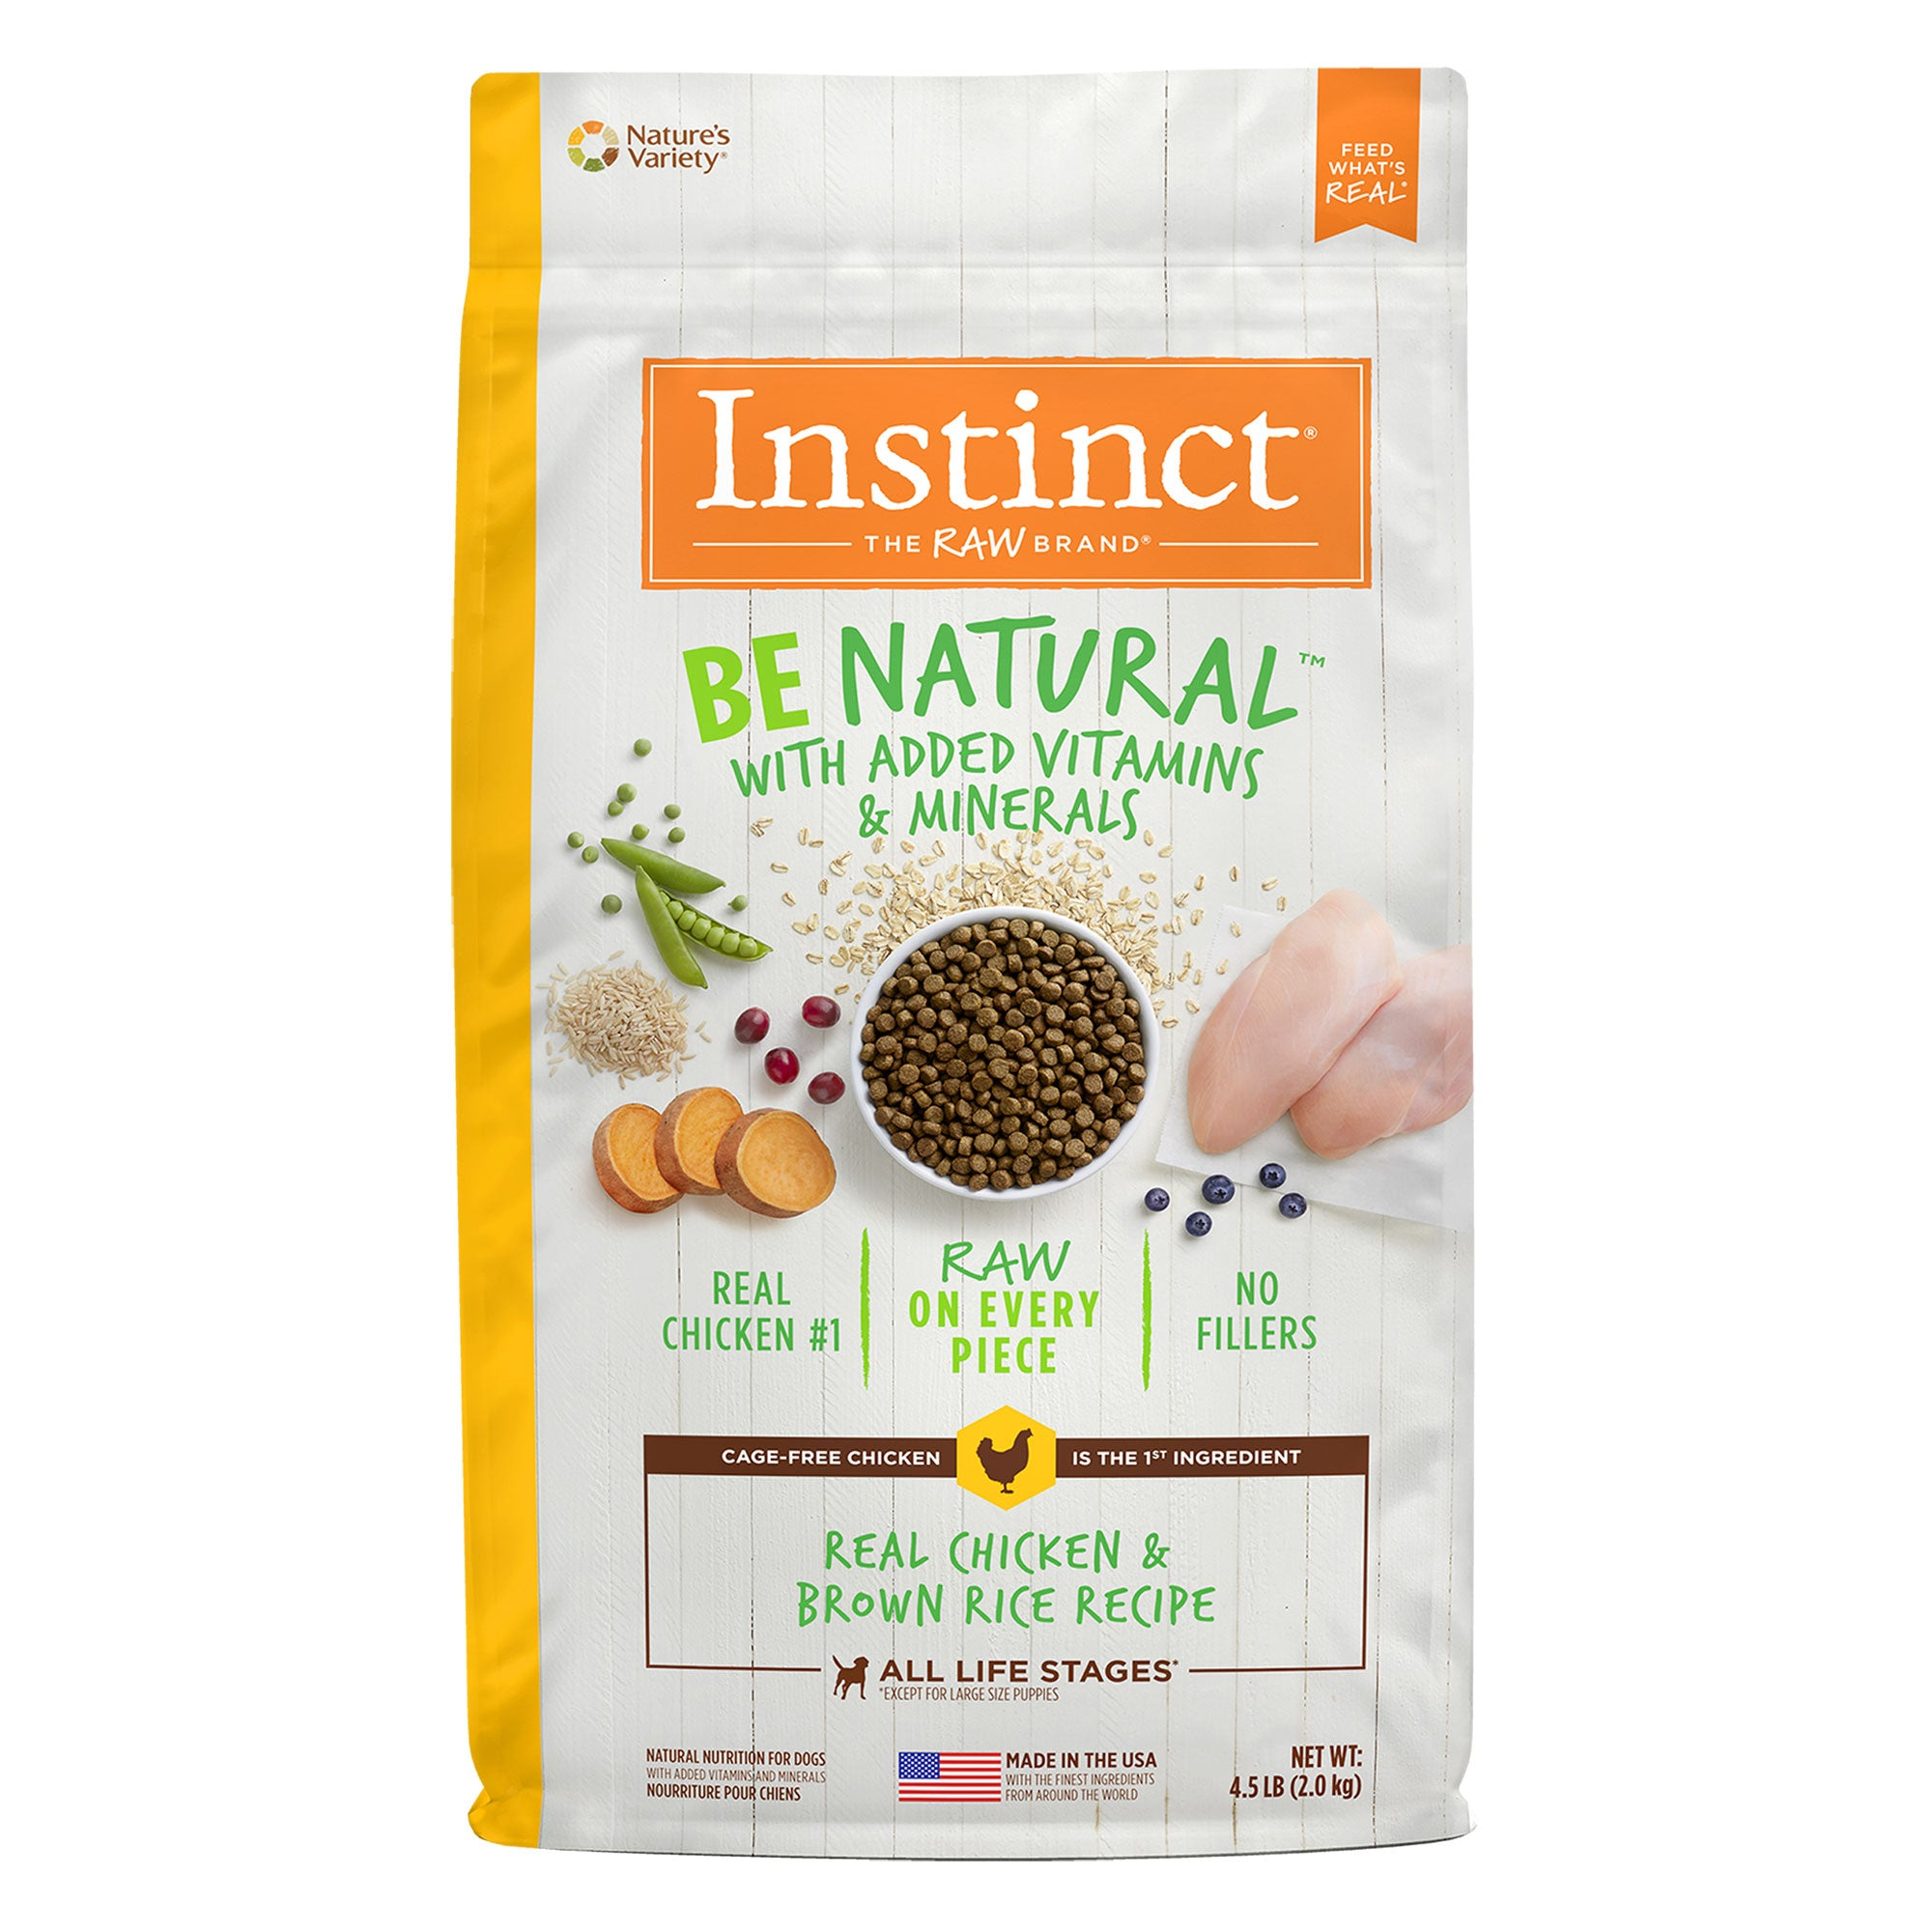 Nature's Variety Instinct Be Natural Chicken & Brown Rice Dry Dog Food